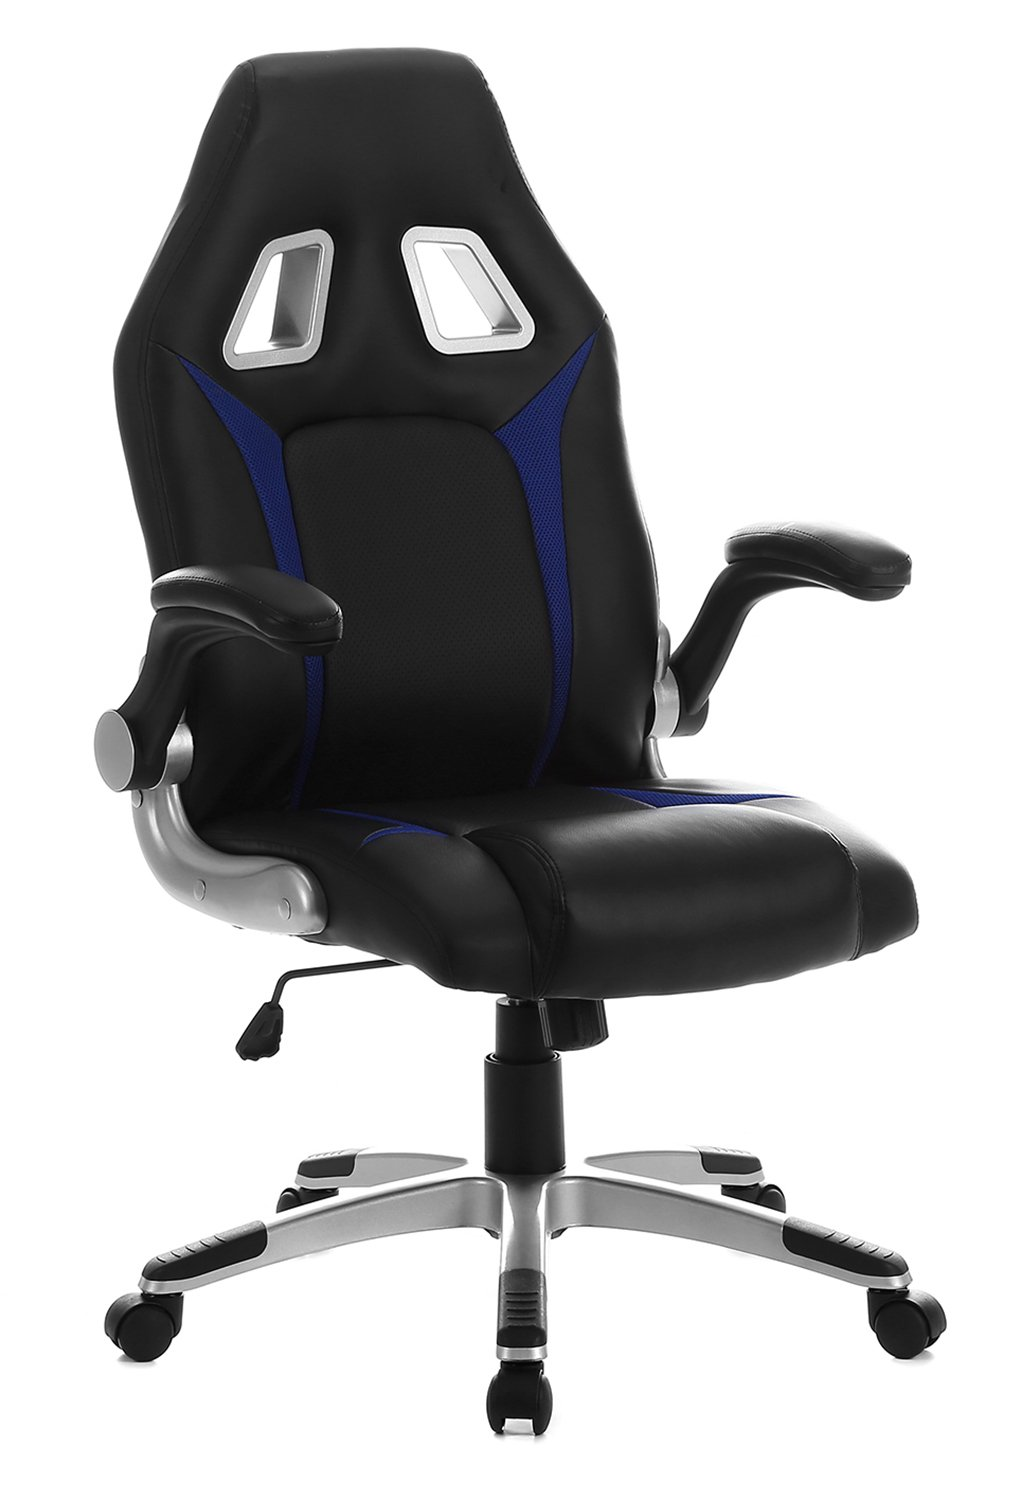 SEATZONE Racing Car Style Gaming Chair with Thick Padded Bucket Seat and Flip-Up Armrest for Home, Office, Video Game Room, Computer Desk, Leatherette, Blue